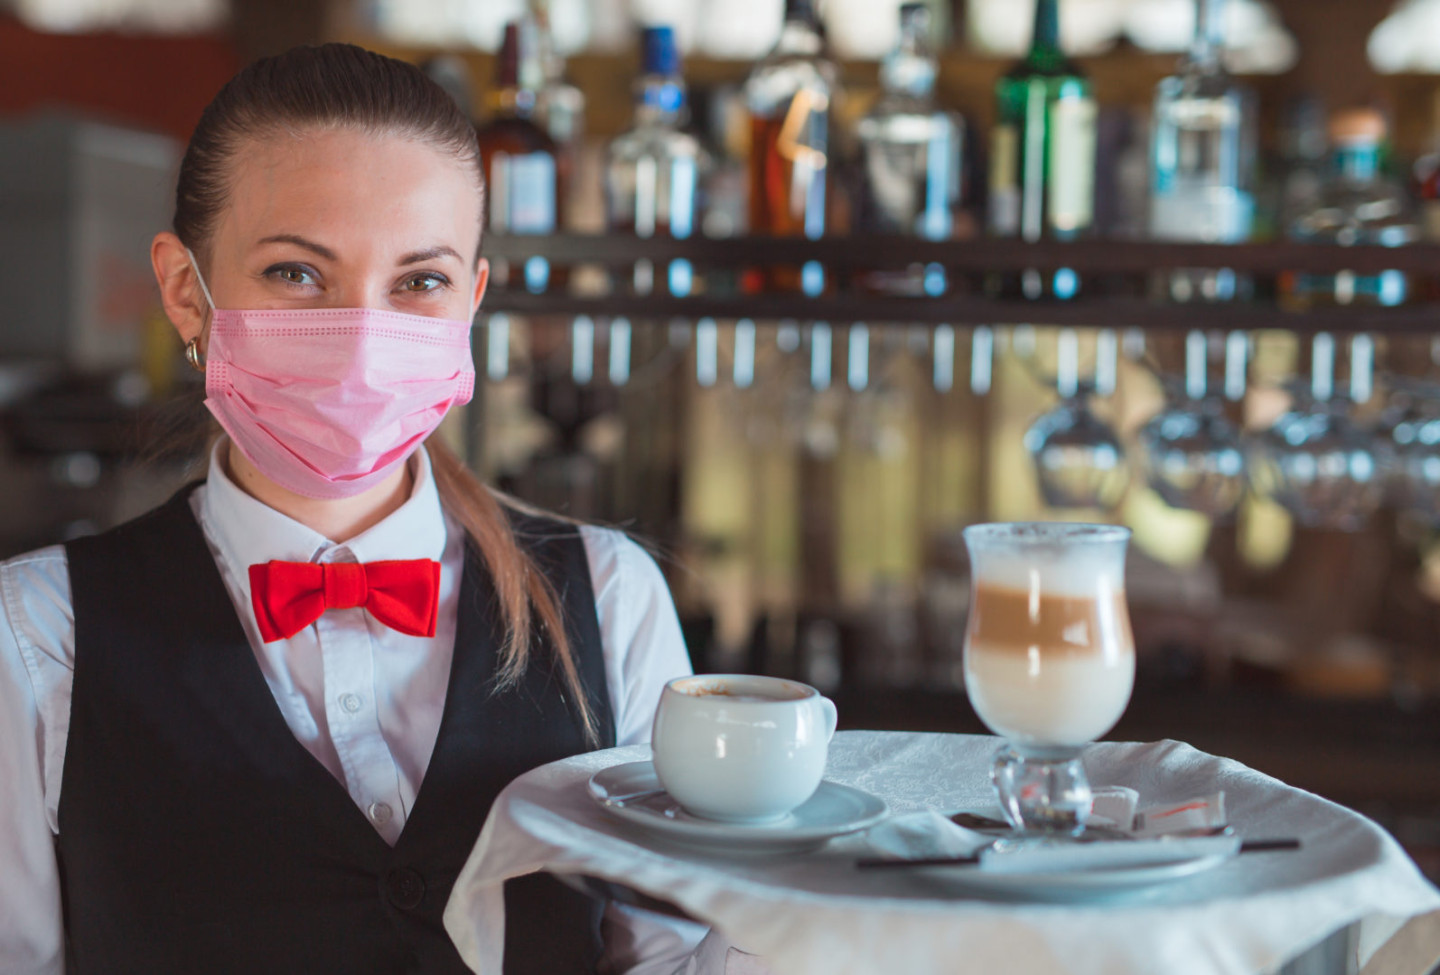 the waiter works in a restaurant in a medical mask.